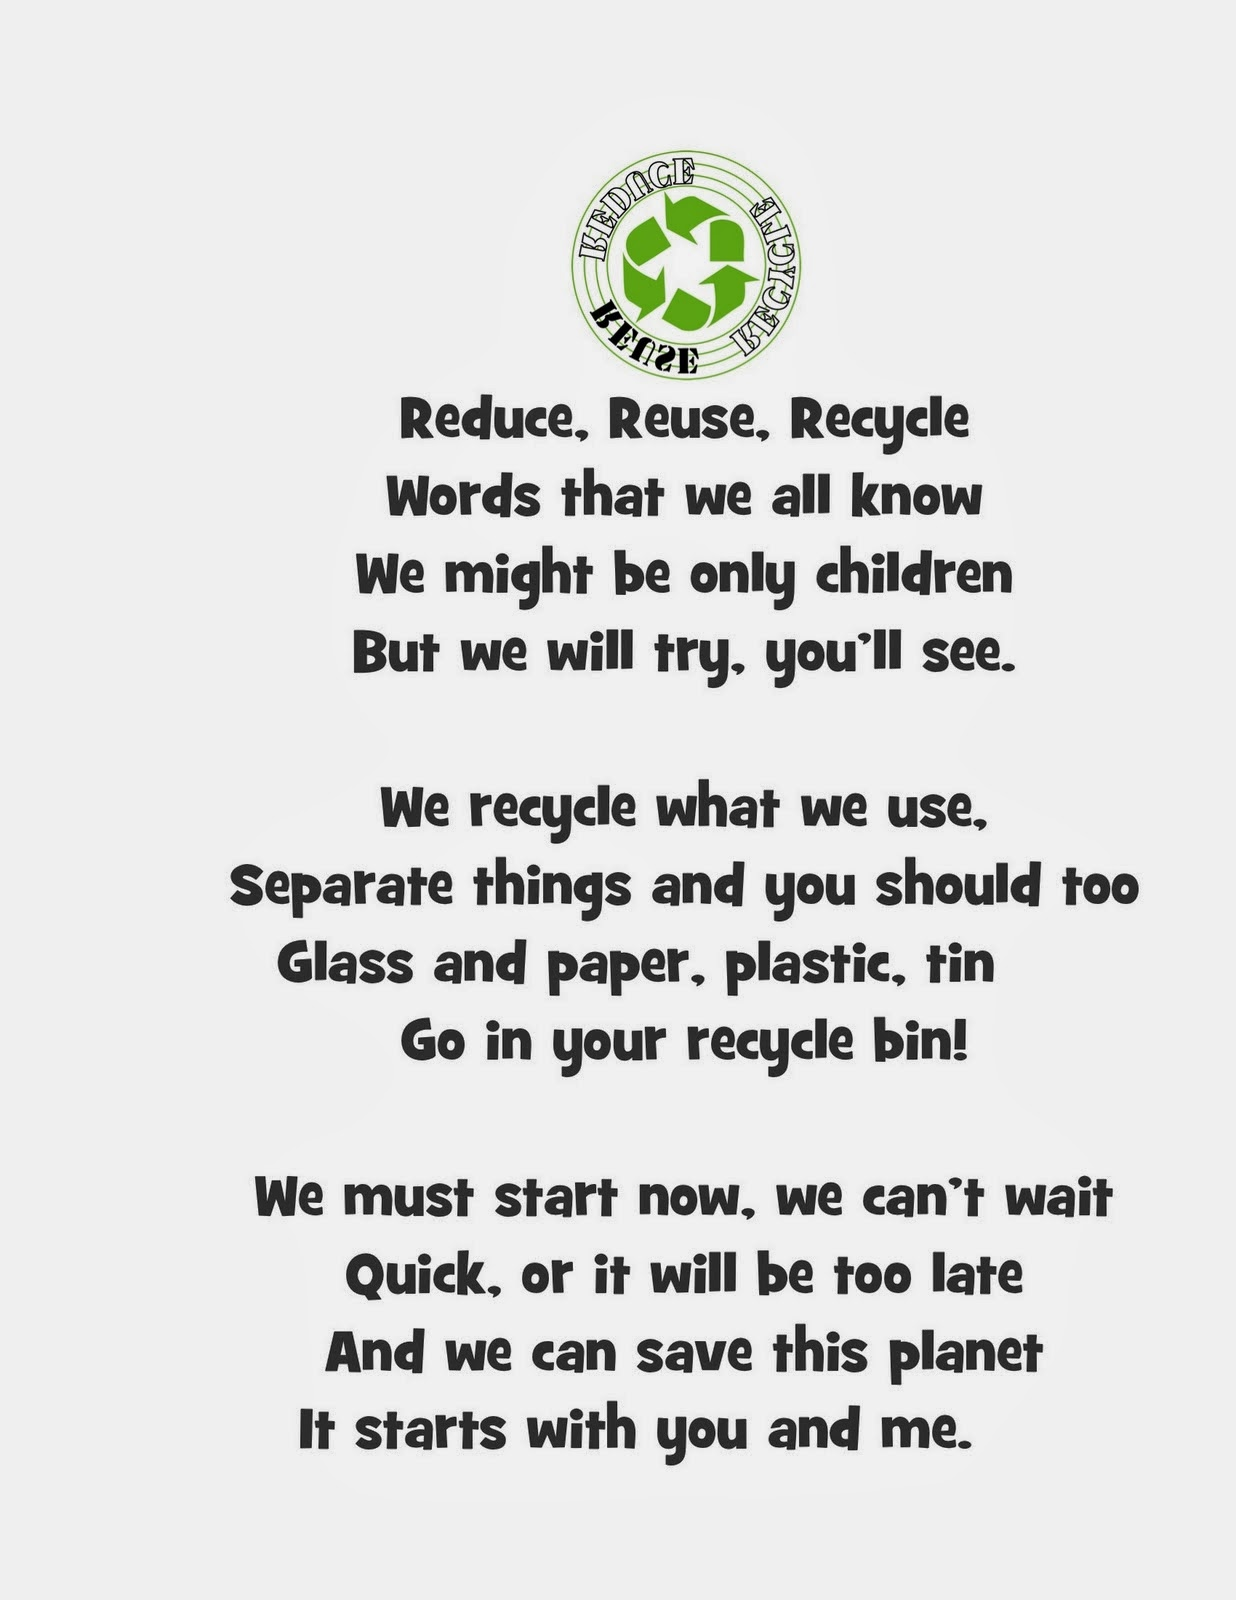 Foreign Language Teachers : Recycling Poem and Songs